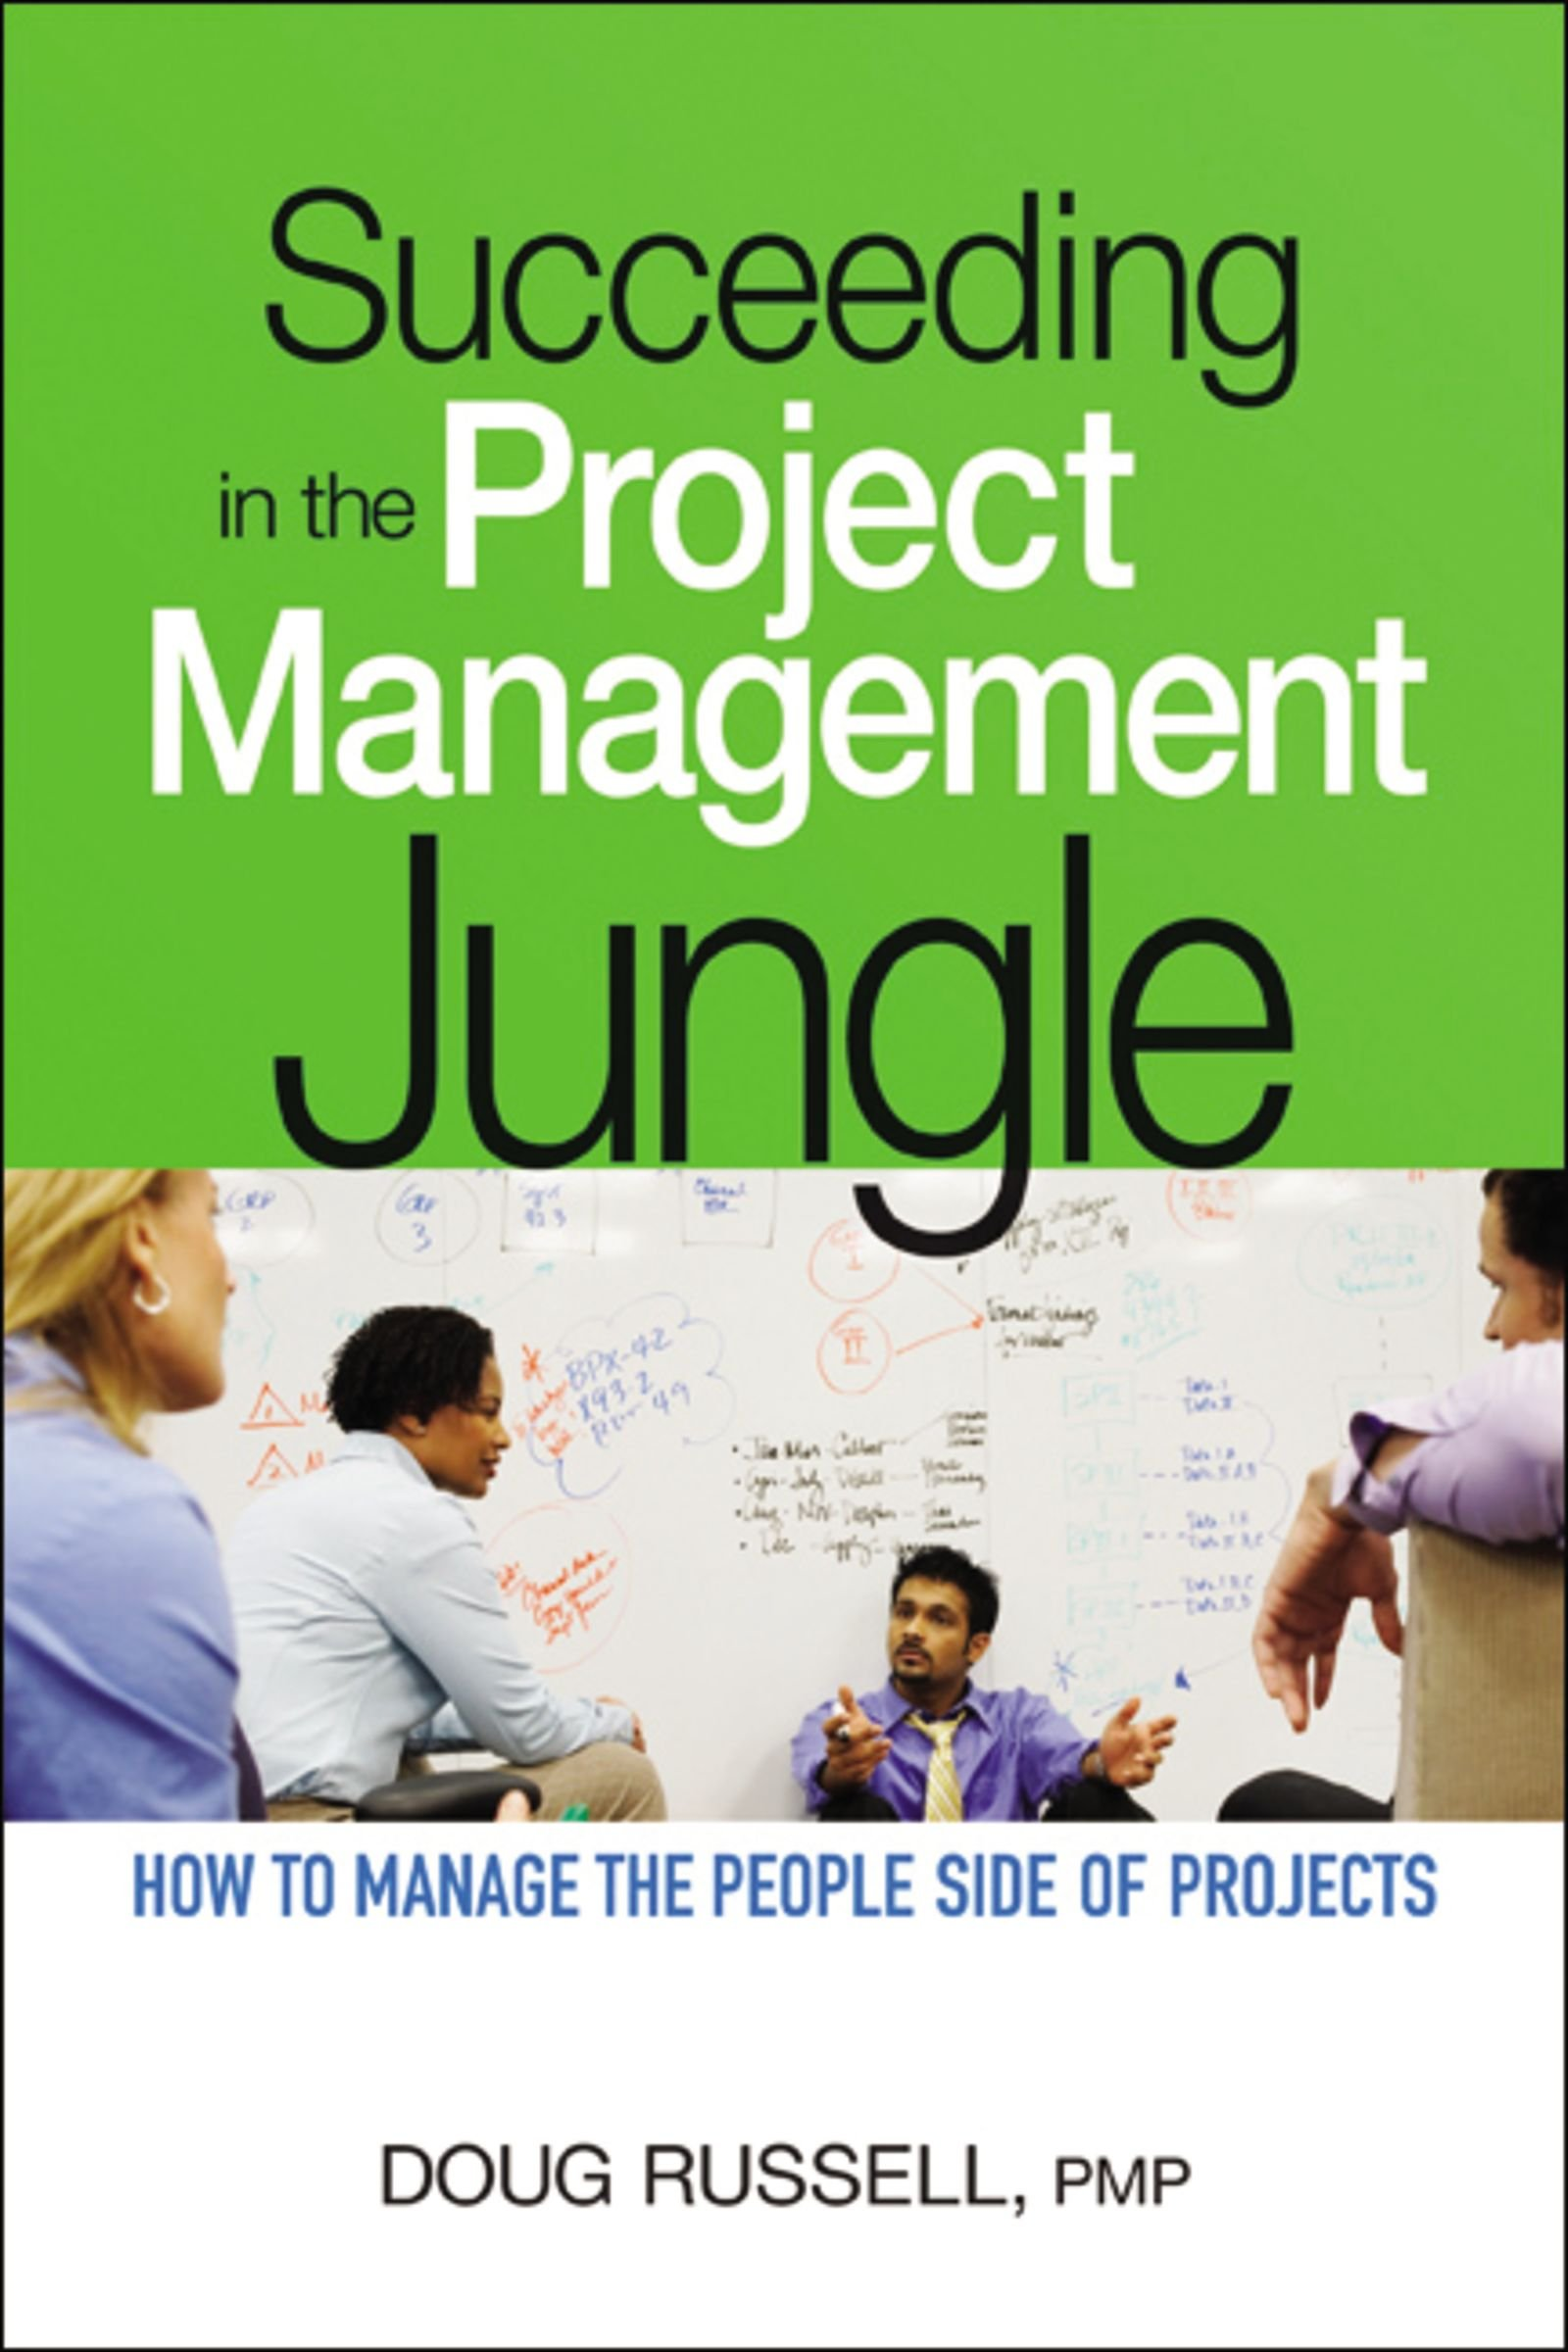 Succeeding in the Project Management Jungle: How to Manage the People Side of Projects PDF